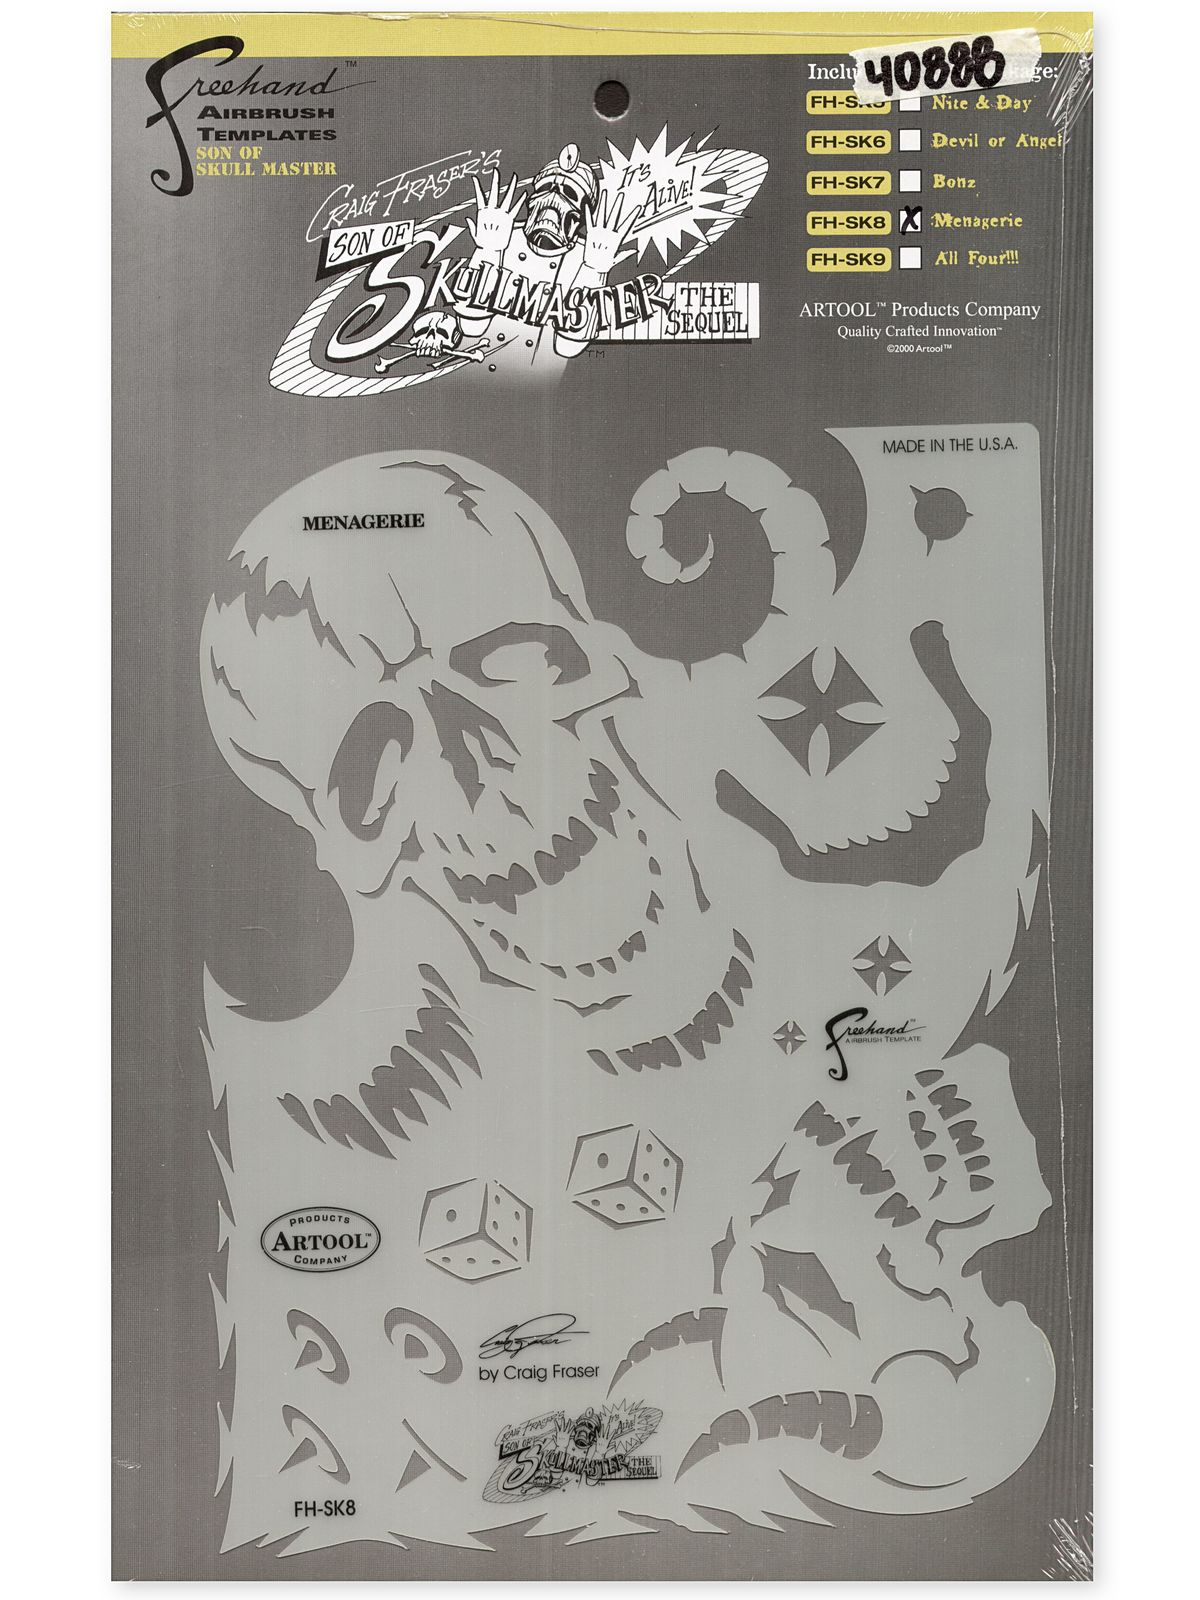 Son of Skull Master Freehand Airbrush Templates by Craig Fraser